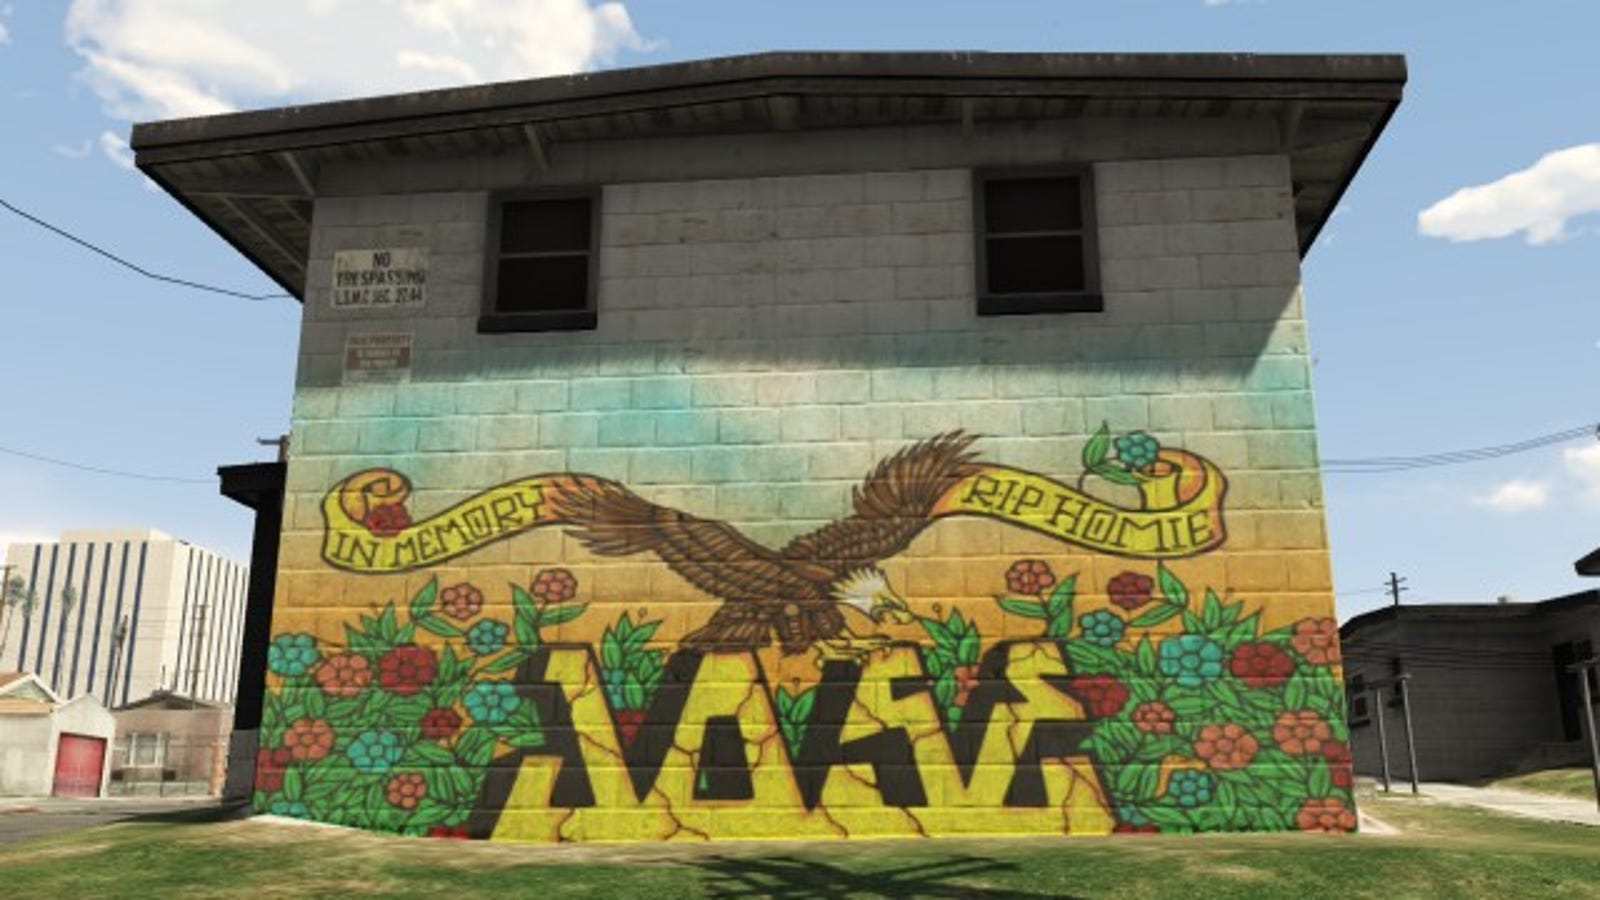 Grand theft auto v shows other games how graffiti is done